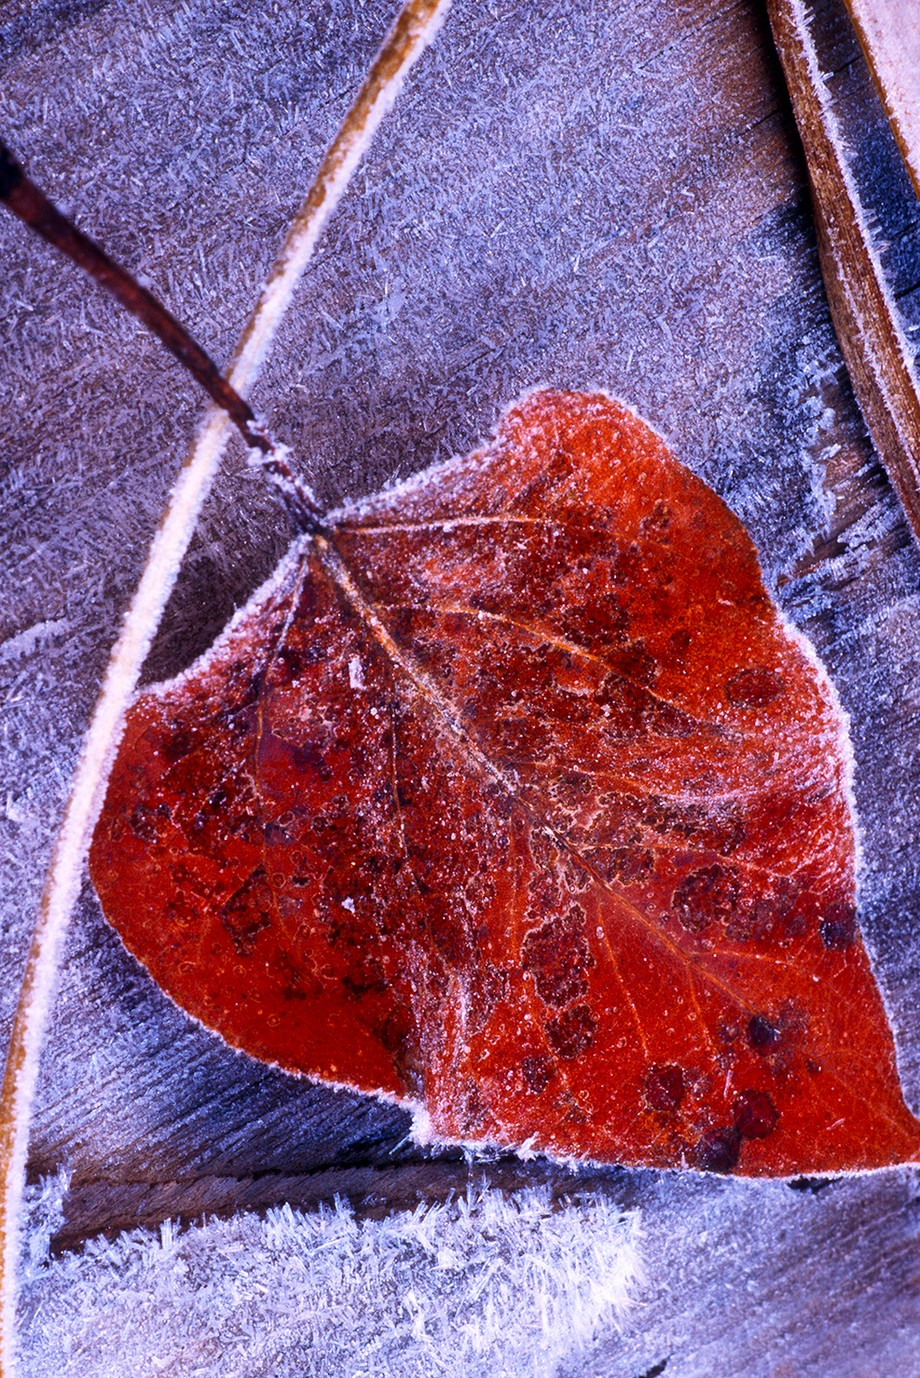 "Taken during a winter photography class in Yosemite Valley.This frosted leaf was captured on 35-mm slide film--probably Velvia or Ektachrome 100. The image on the scanned slide was cropped, so what you see is probably about 25% of the original. I've had it enlarged to a 20"" x 30"" giclée print and was amazed that the ice crystals were still sharp.  Camera was a Canon EOS 3, Canon 50 mm f/1.4 lens(handheld)."